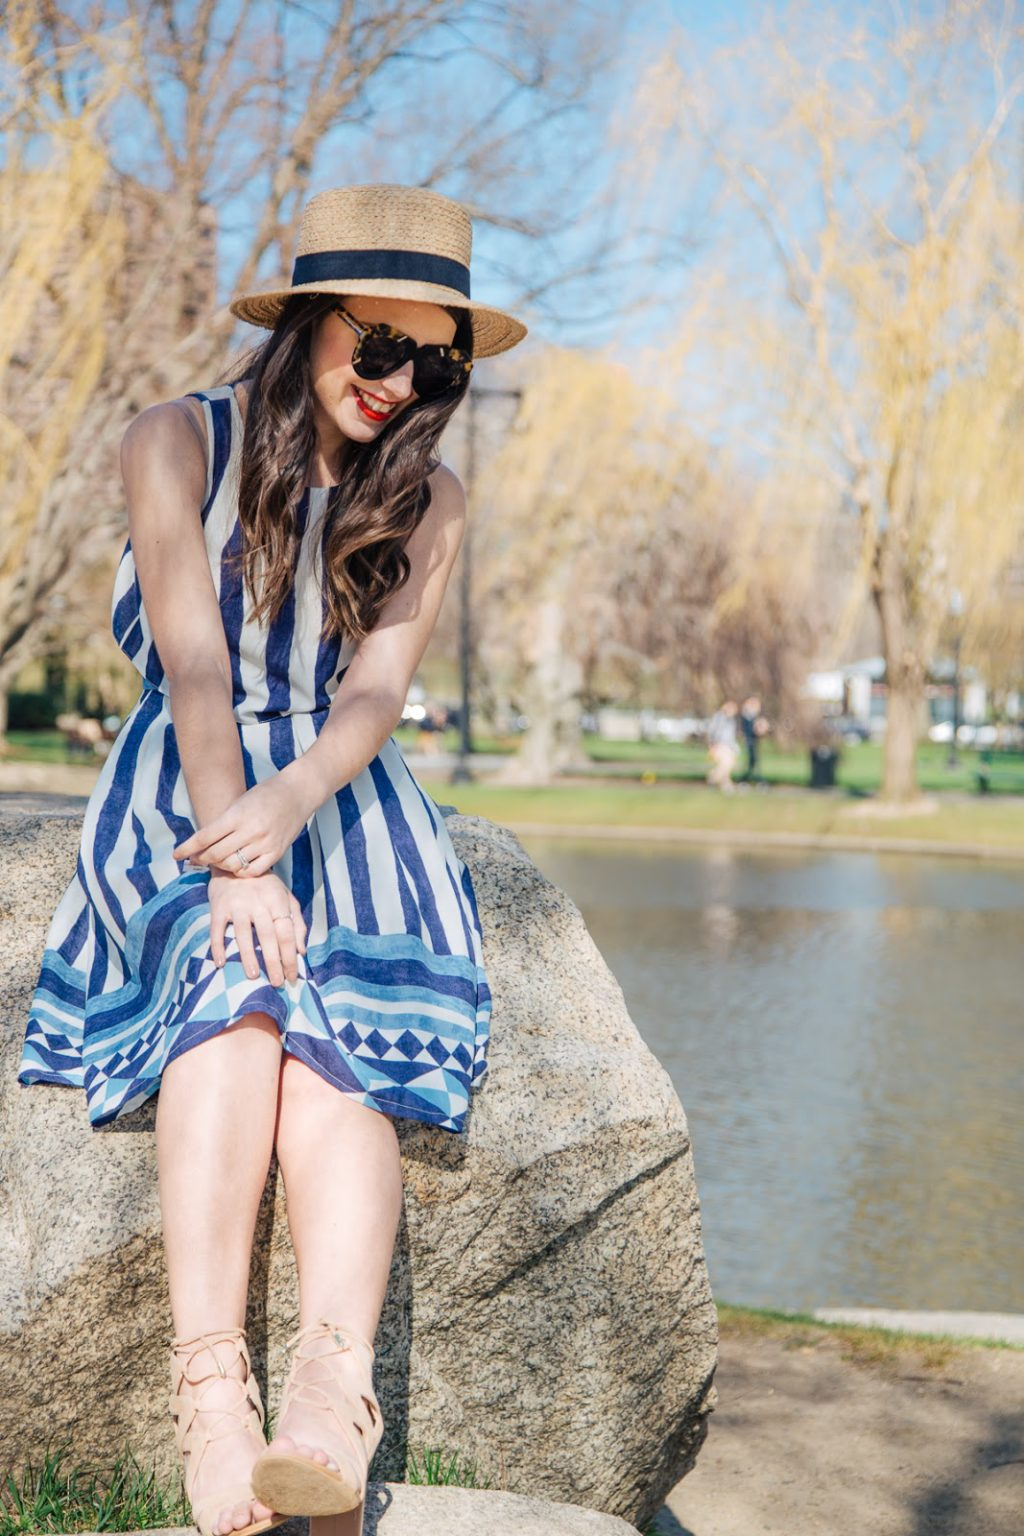 Wearing the Ashbury set from Everly and a straw Sole Society boater for a sunny day in the park